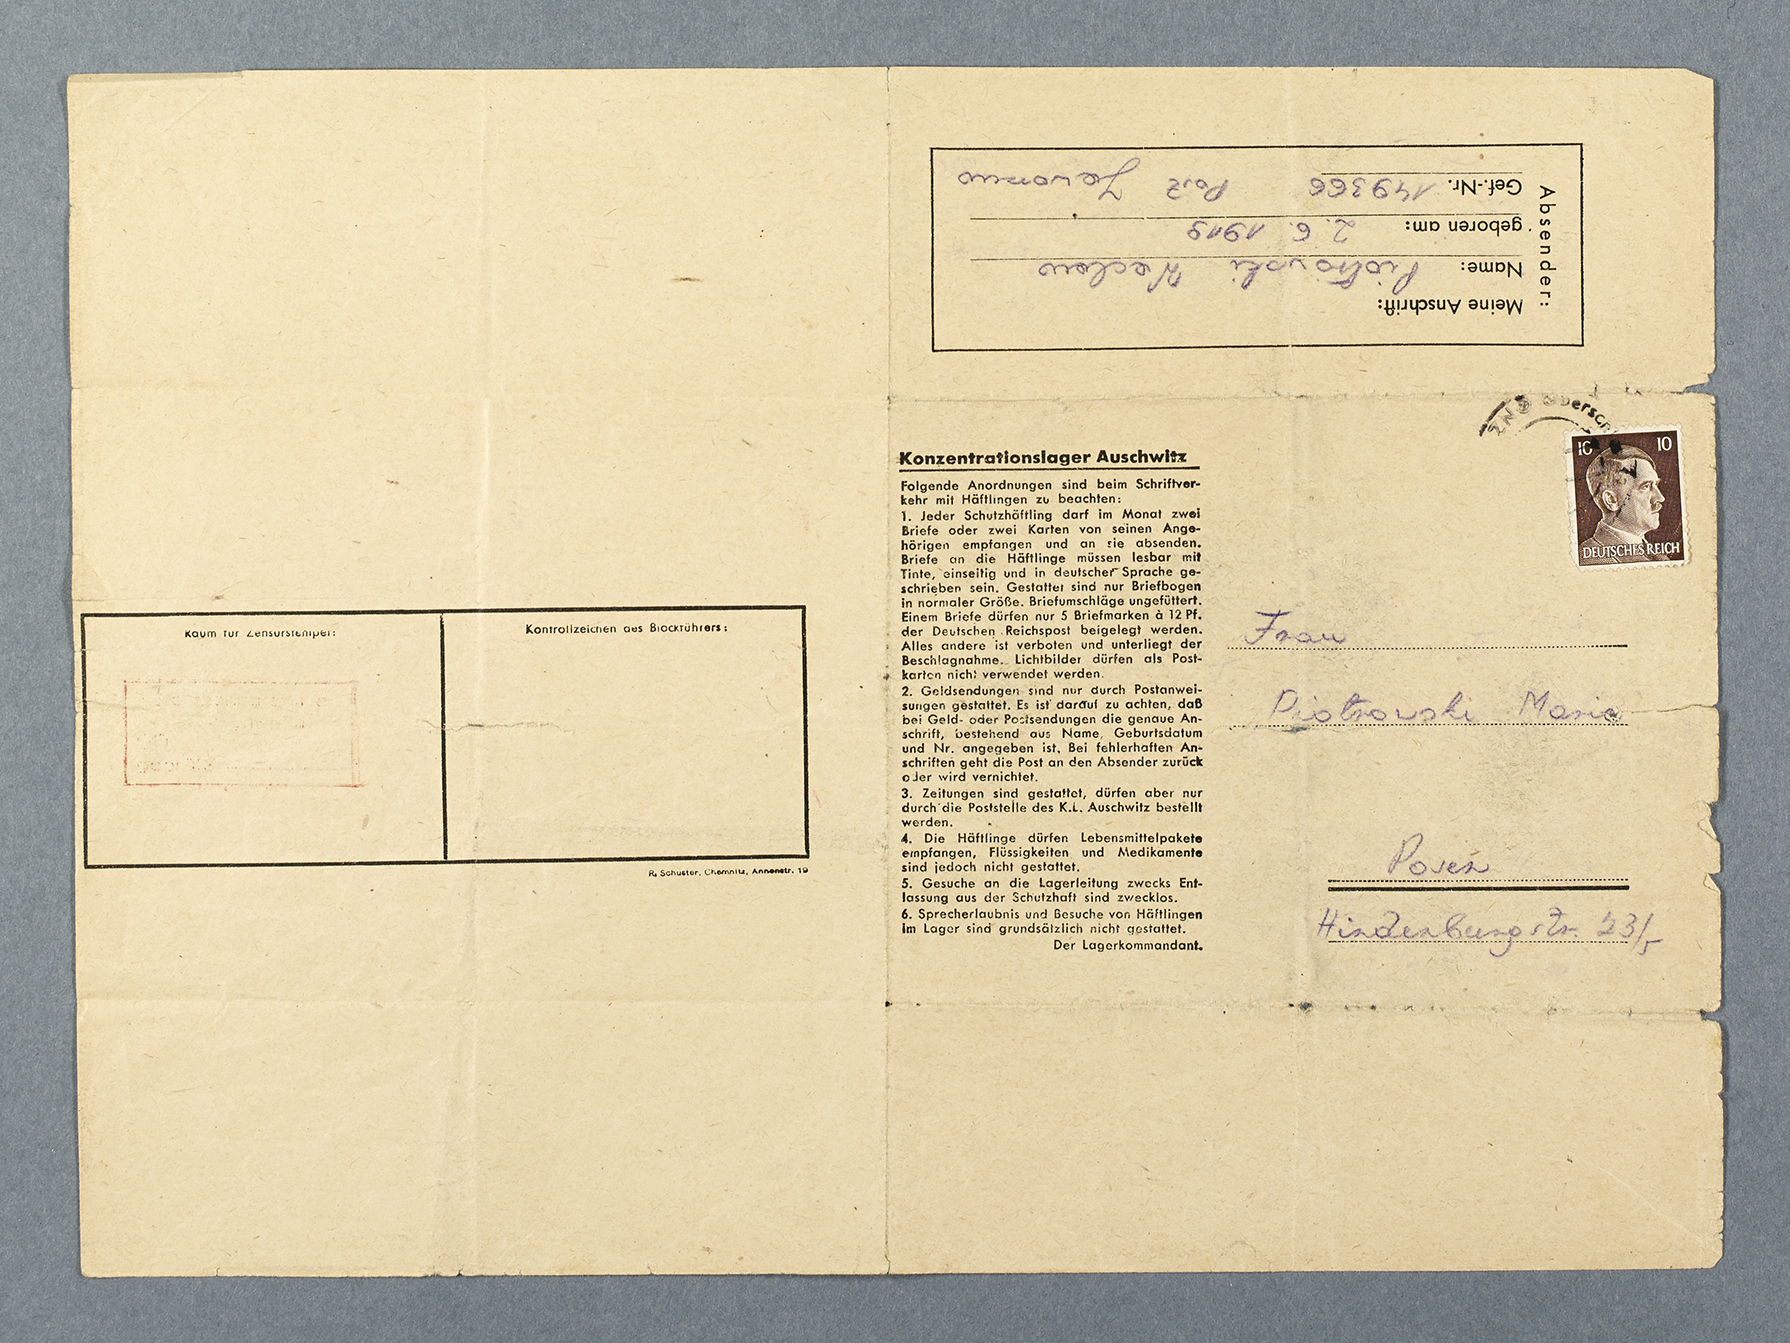 Printed form with a stamp showing Adolf Hitler and the regulations for sending and receiving post in Auschwitz